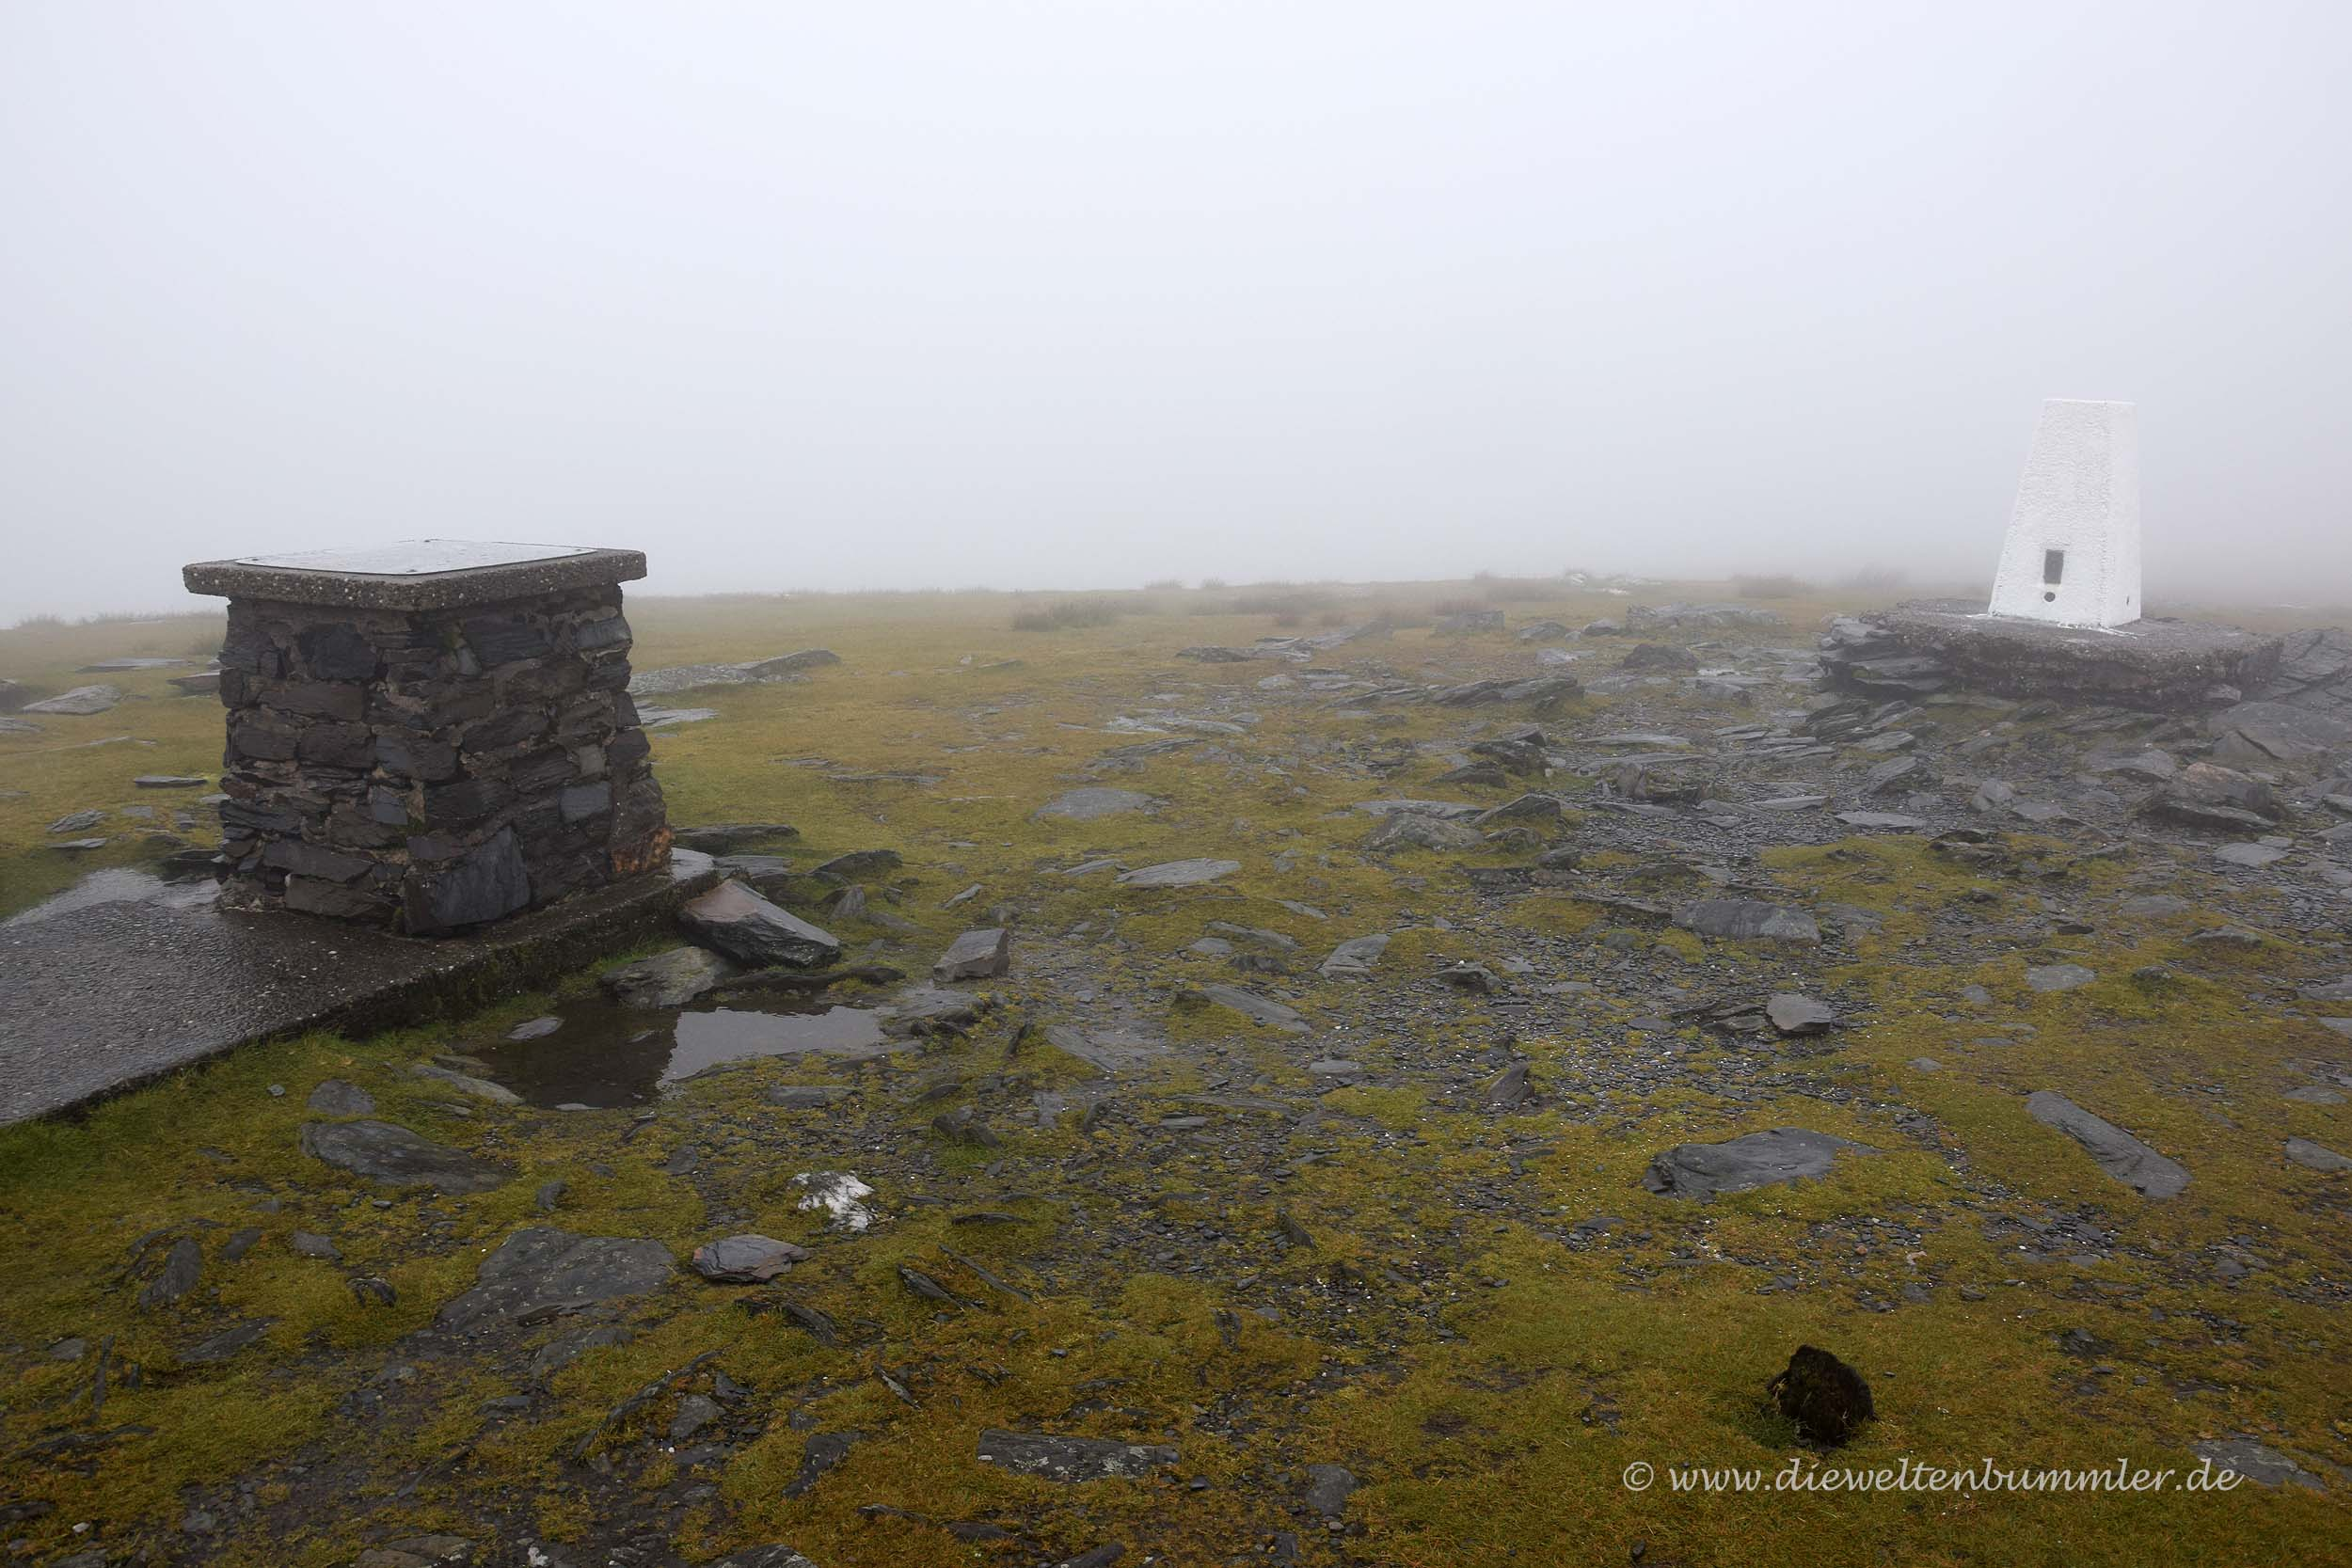 Gipfel des Snaefell